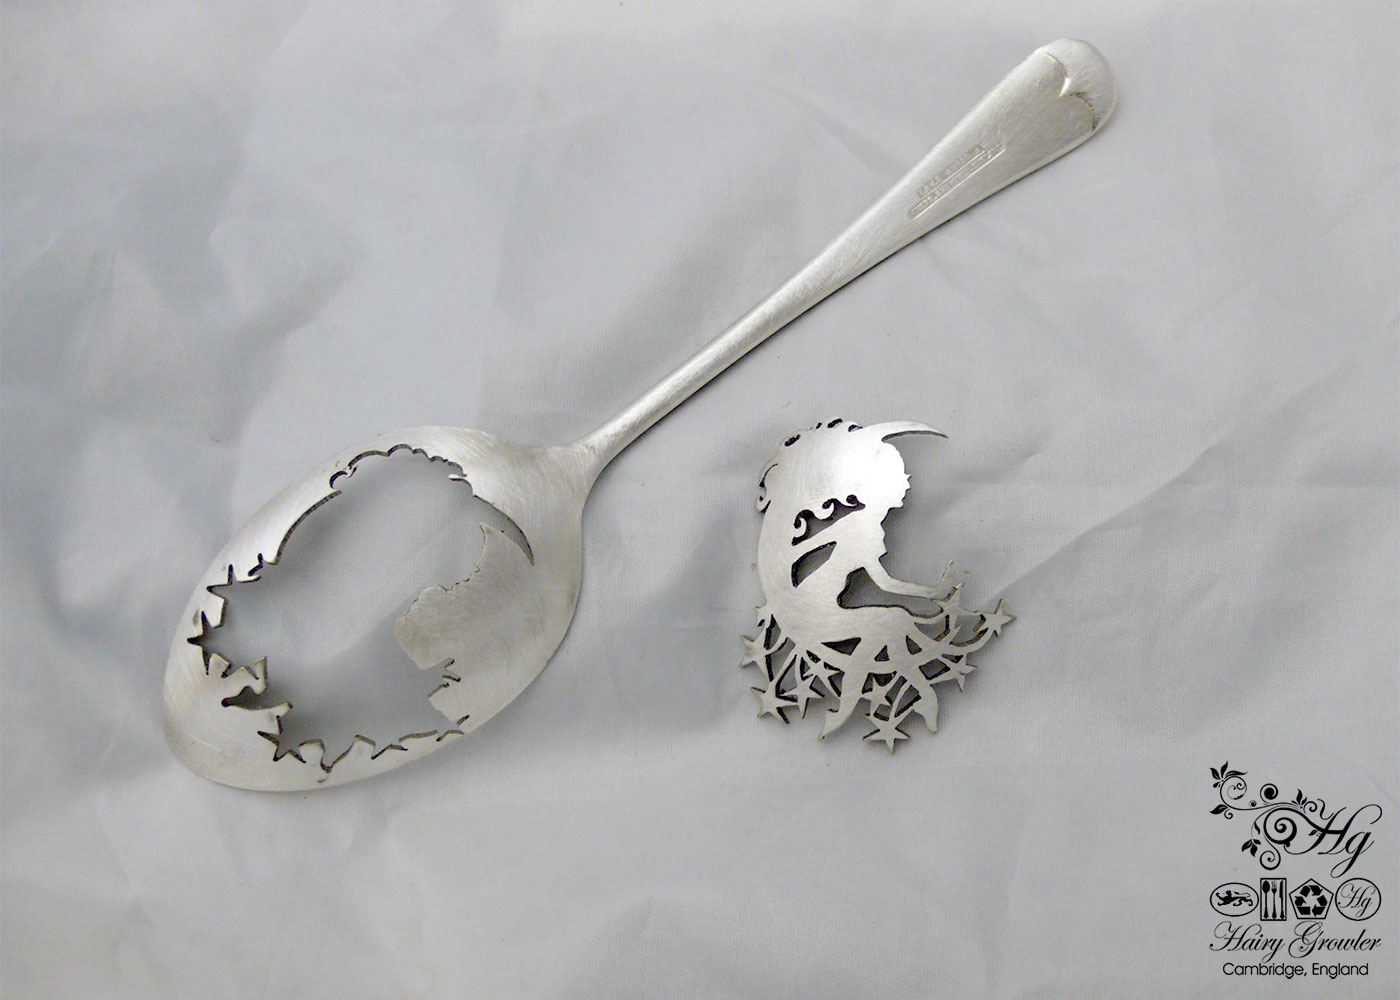 handcrafted and upcycled spoon star and moon girl brooch